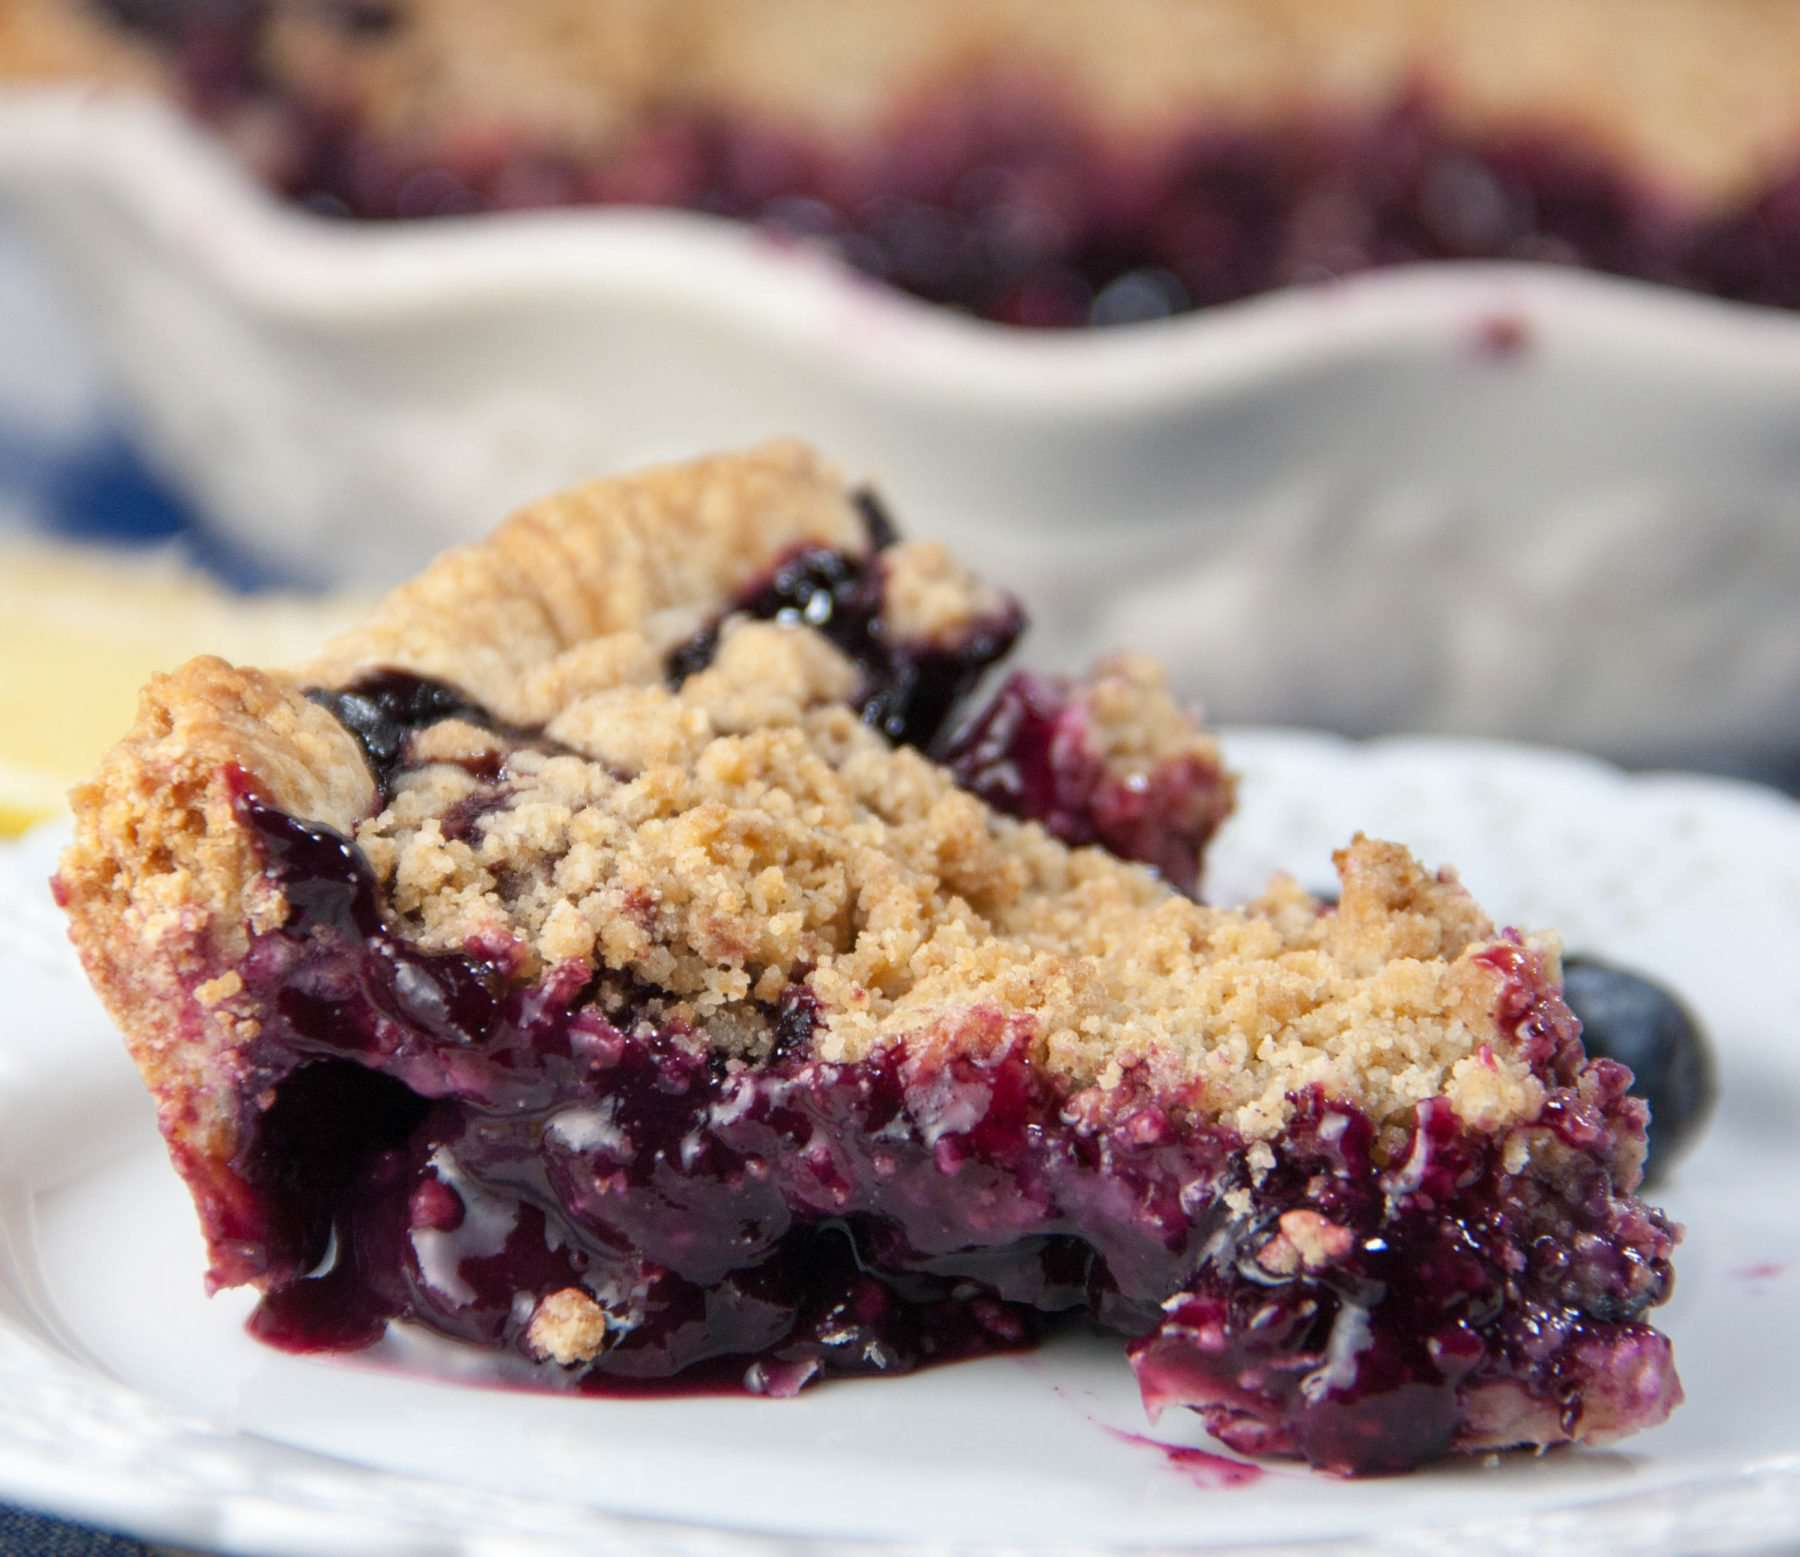 Blueberry pie slice on a plate